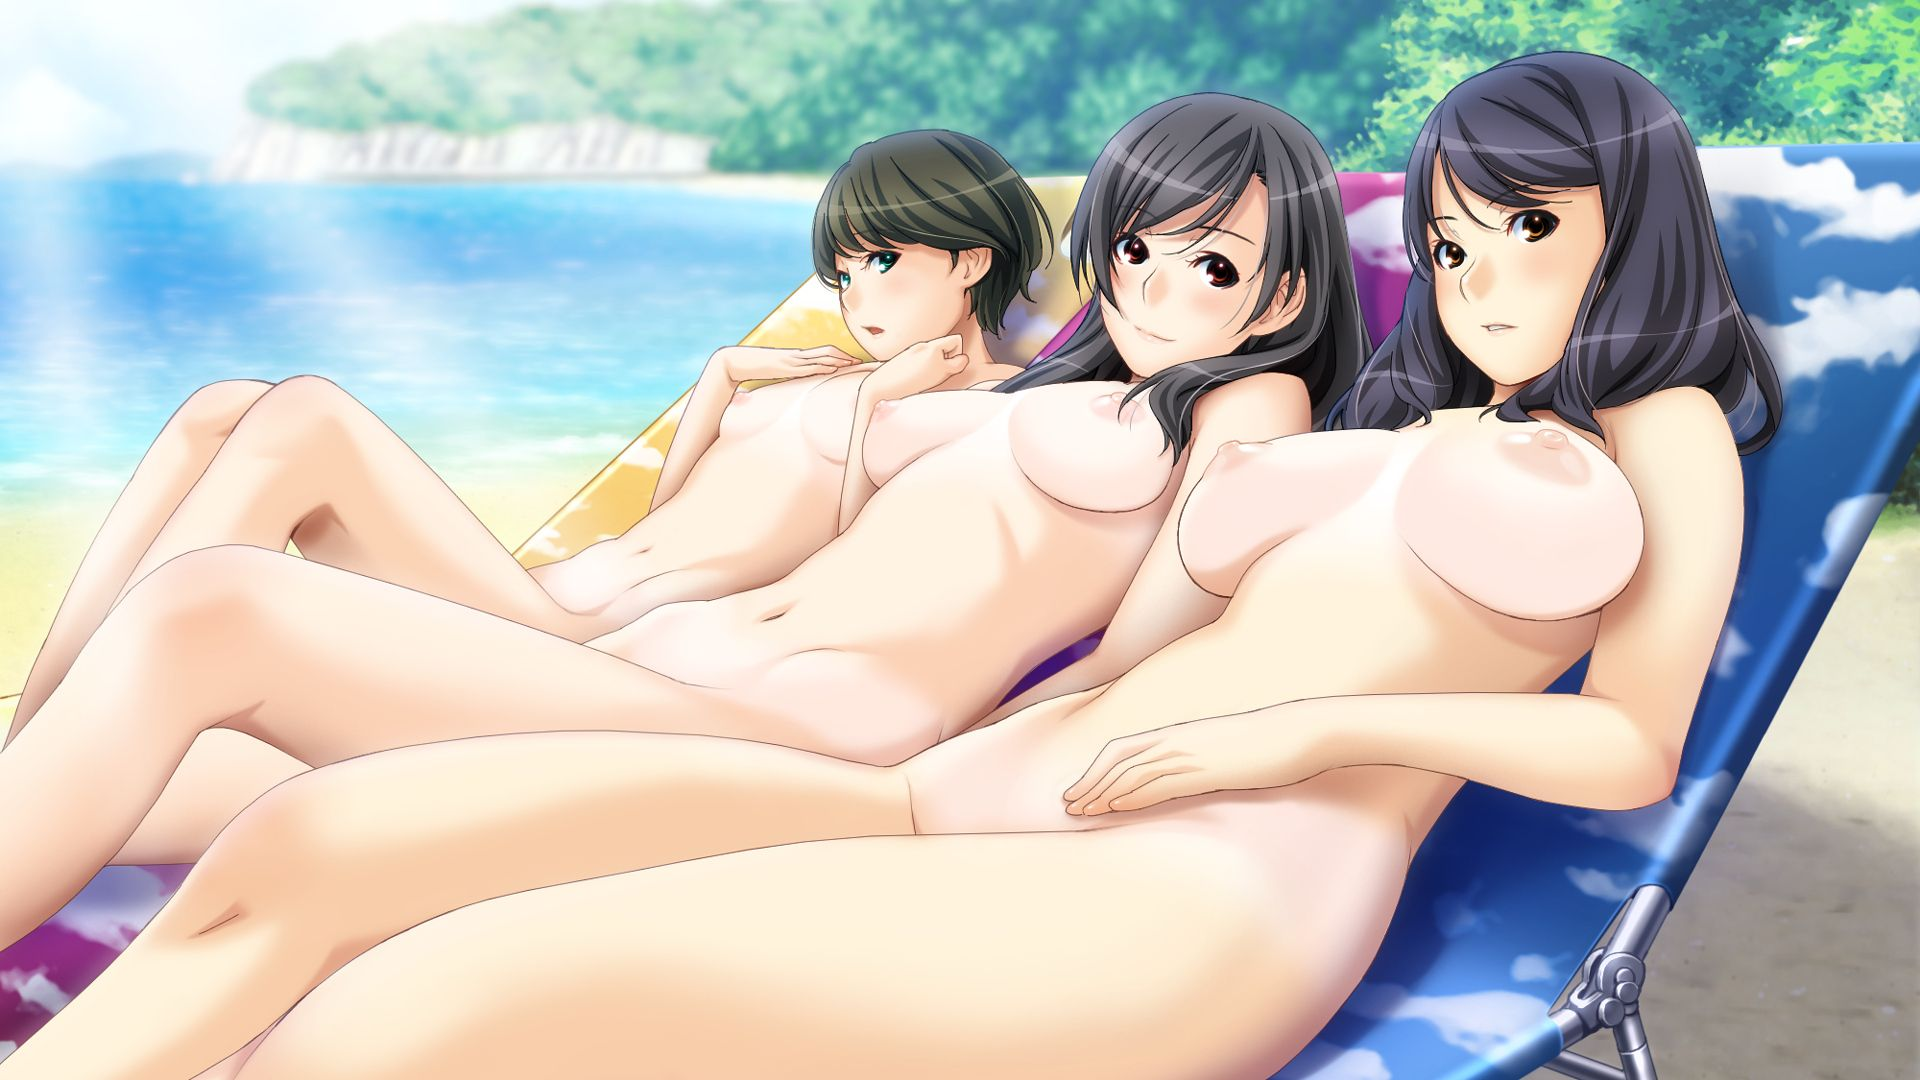 hentai nude girls 17 Best images about anime on Pinterest | Sexy, Bleach and Anime figures